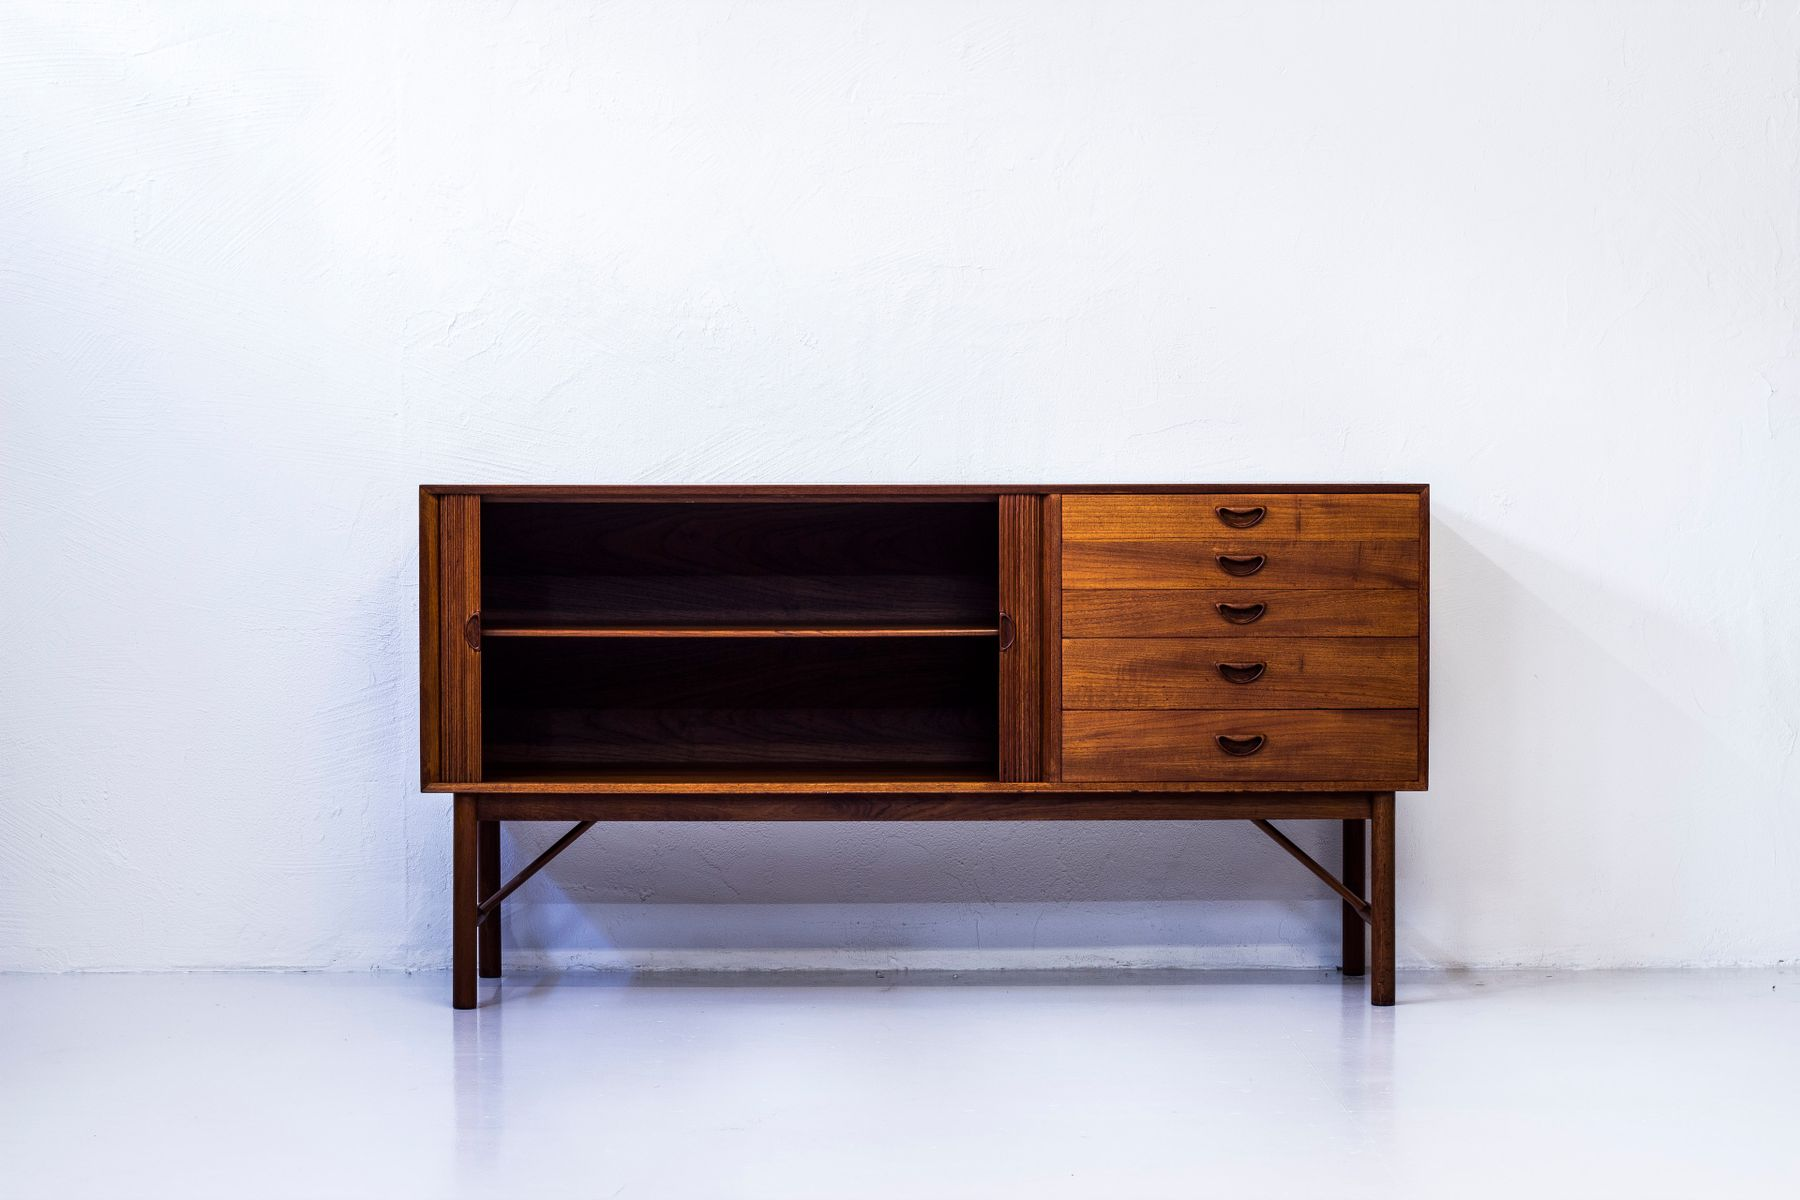 d nisches teak sideboard von hvidt m lgaard f r s borg m belfabrik 1950er bei pamono kaufen. Black Bedroom Furniture Sets. Home Design Ideas